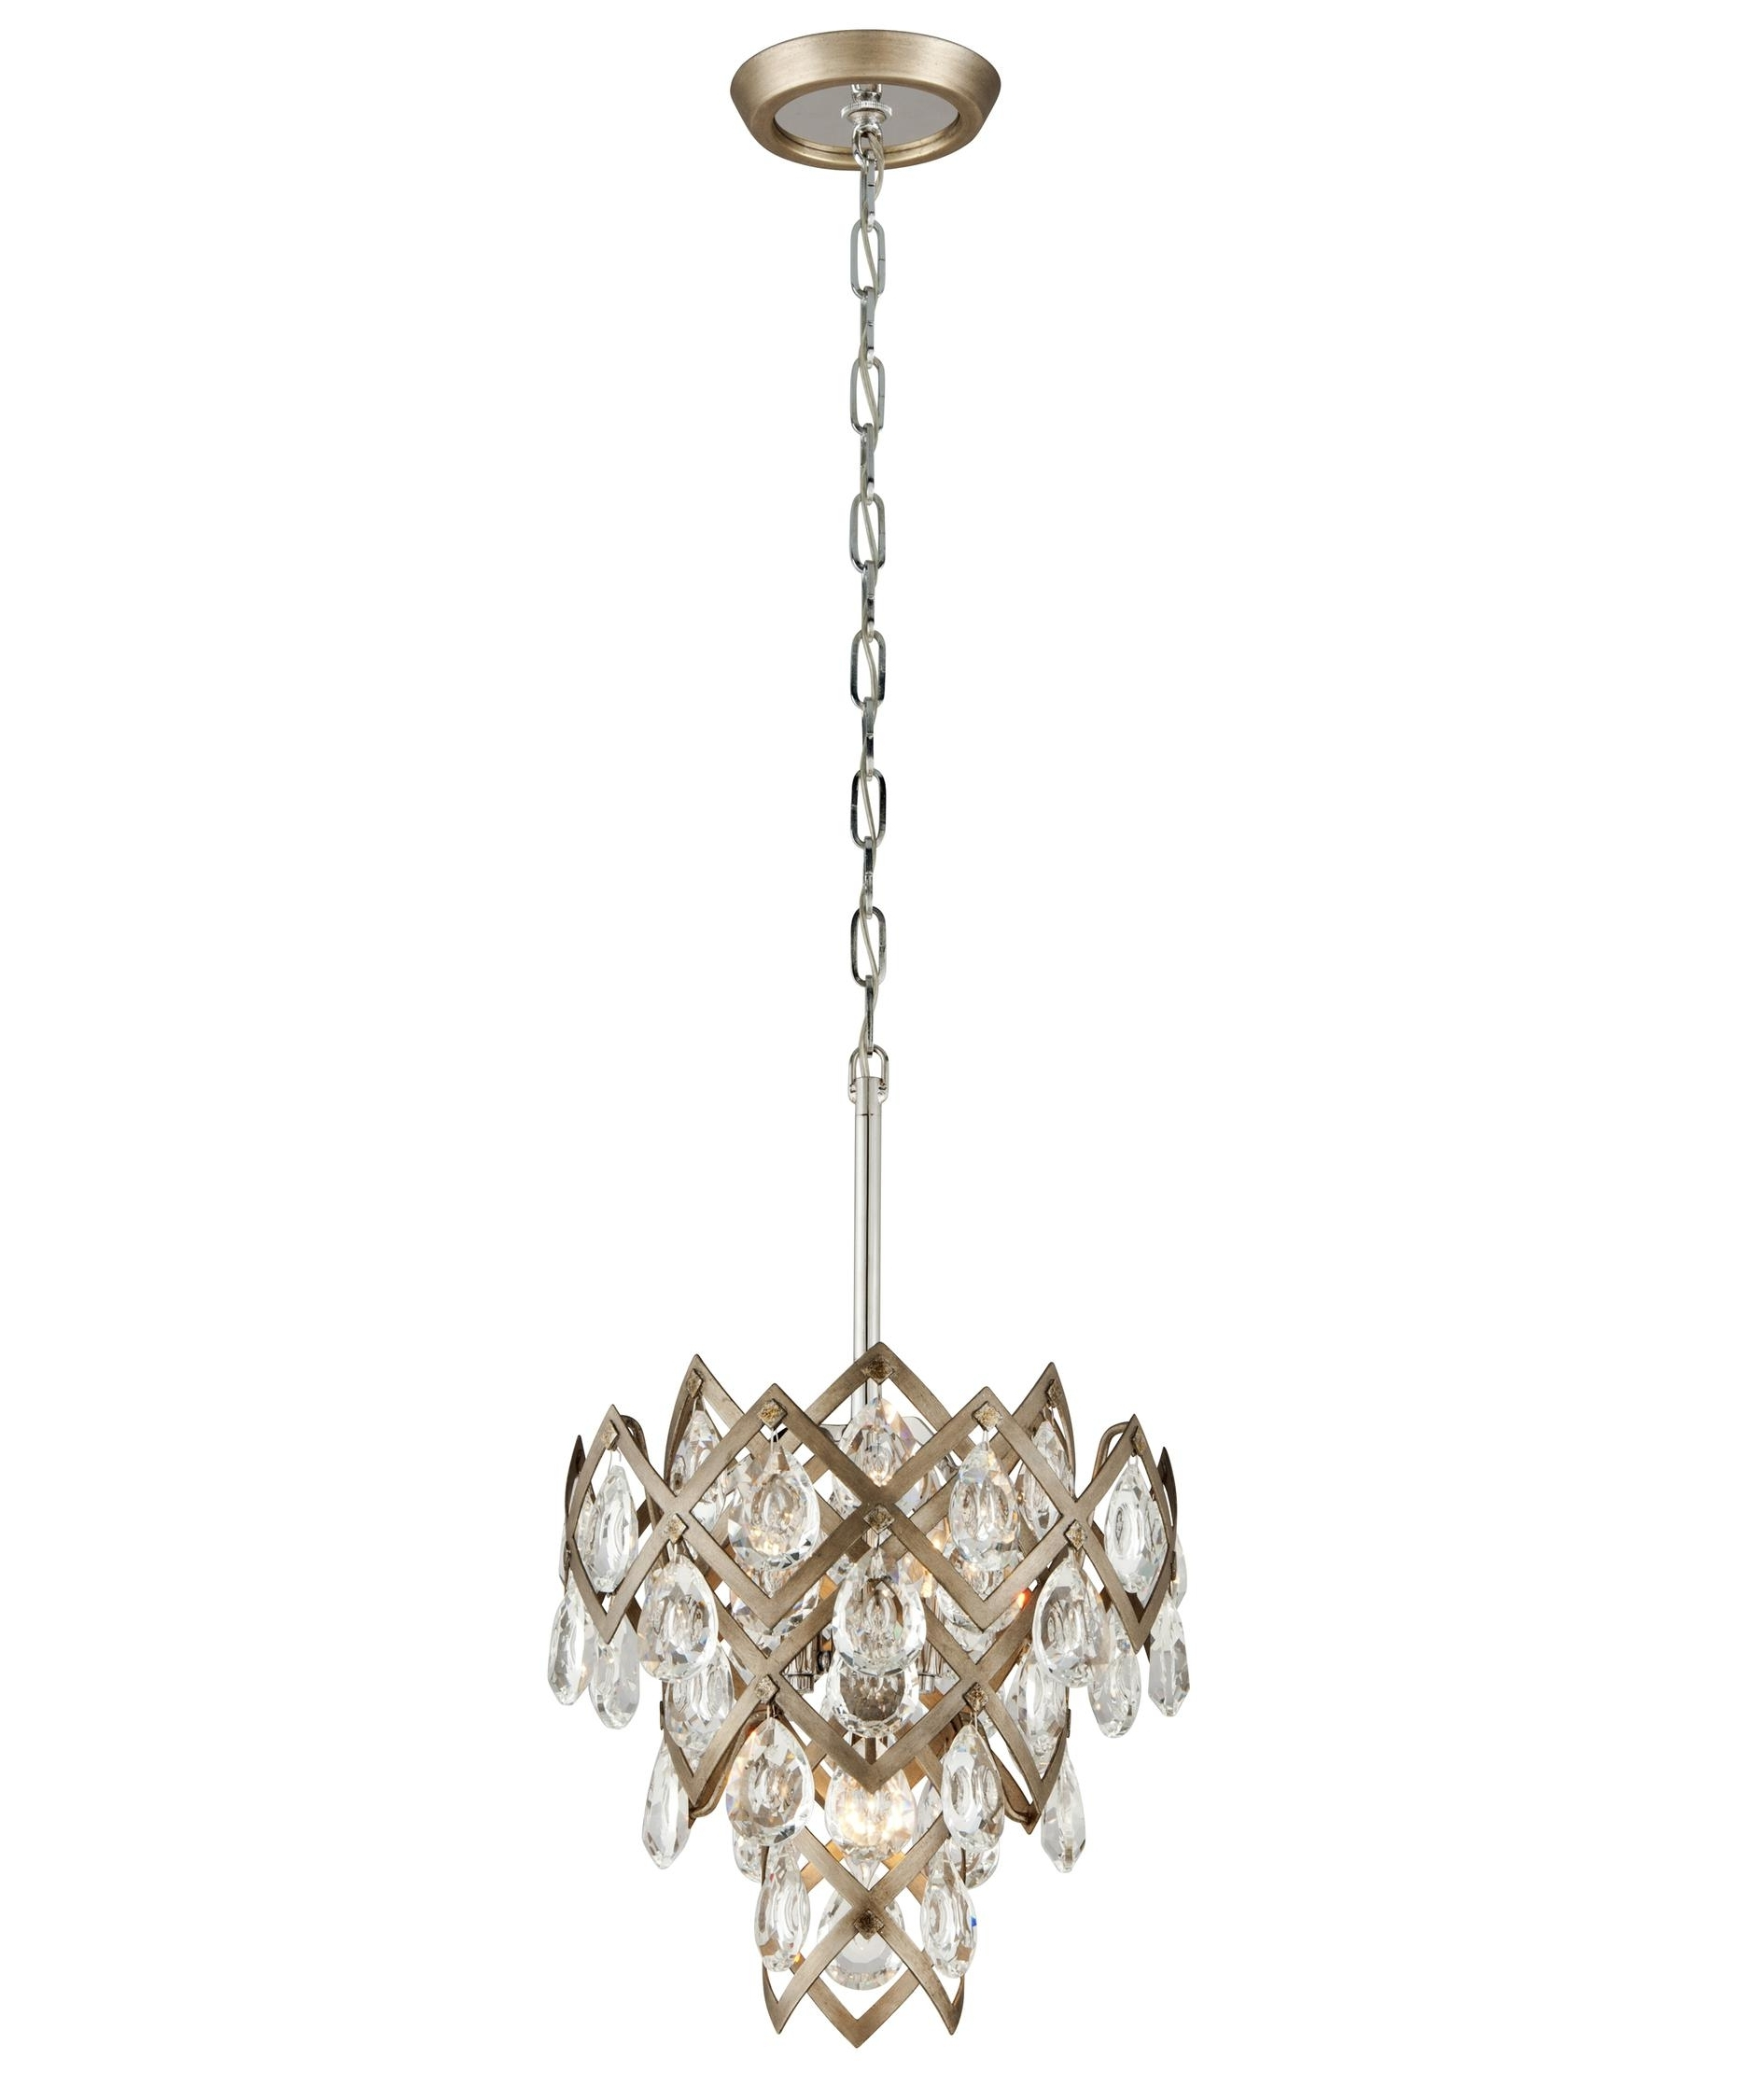 Vienna Crystal Chandeliers In Favorite Corbett Lighting 214 44 Tiara 15 Inch Wide 3 Light Mini Pendant (View 16 of 20)